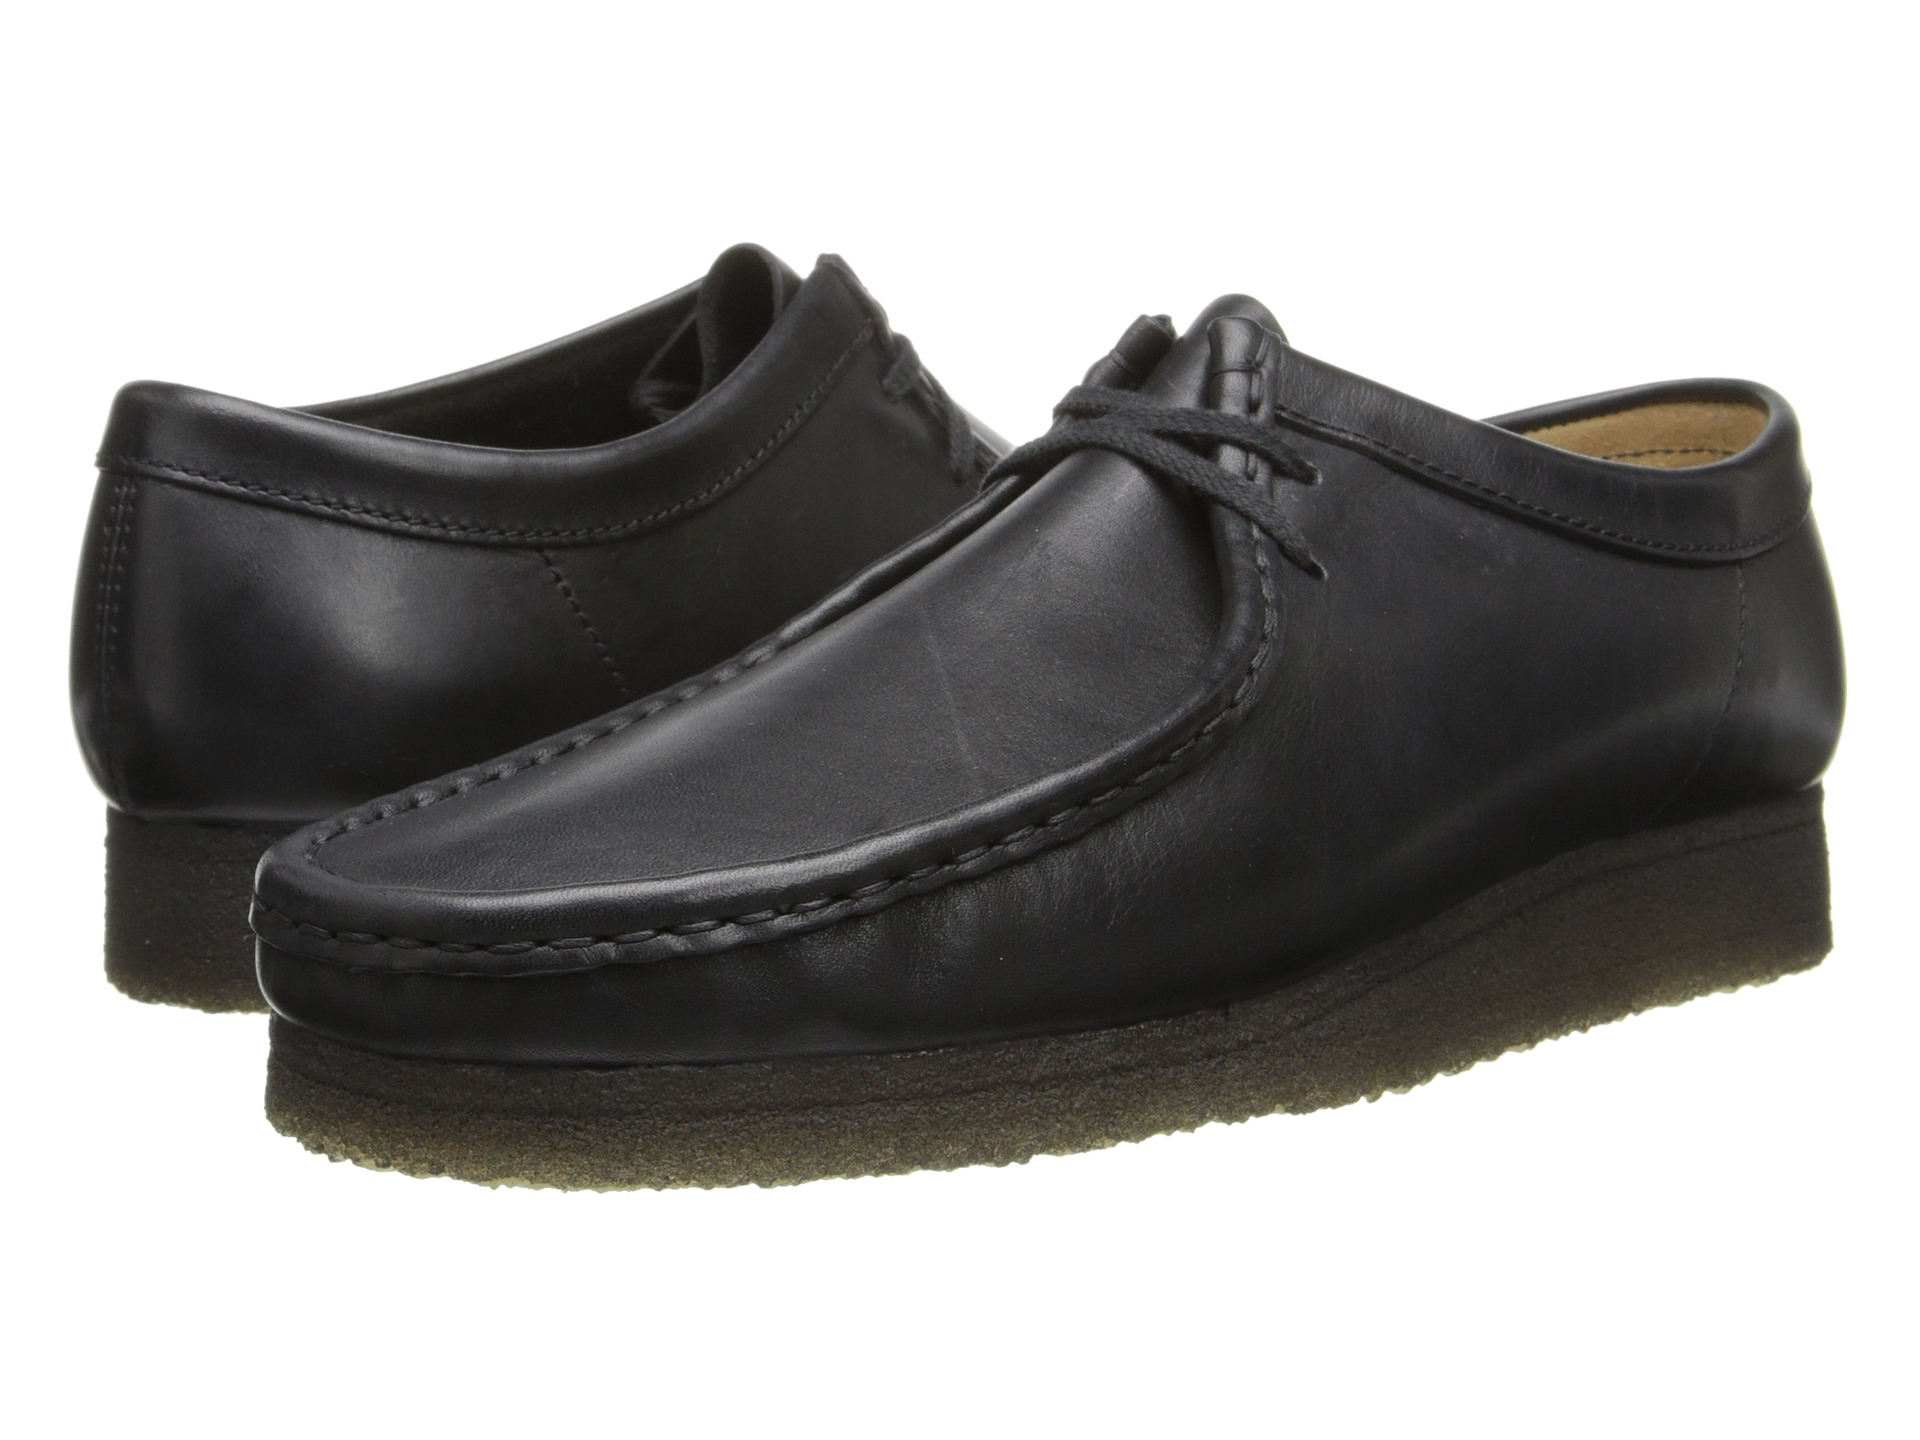 Zappos Clarks Walking Shoes